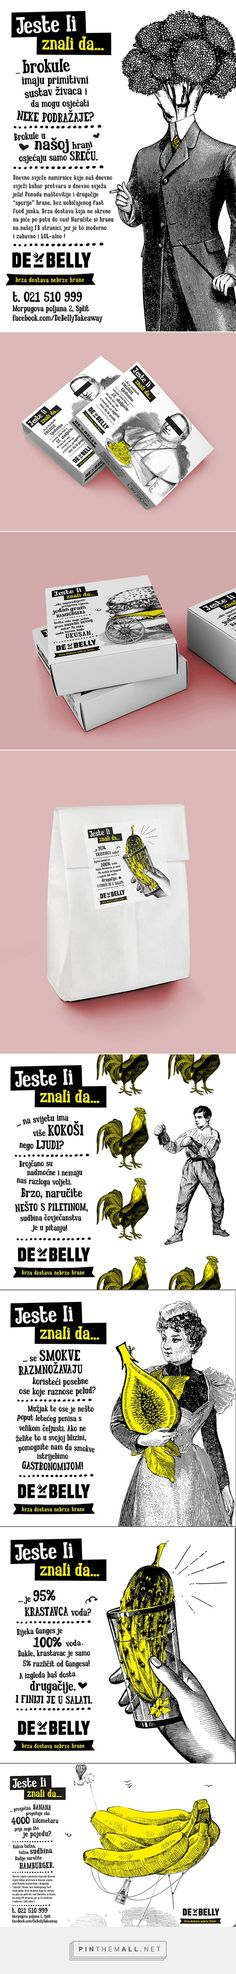 DeBelly dostava on #Behance this is kinda cool take out #packaging. Something to do with the Pope and pickles (LOL) curated by Packaging Diva PD created via https://www.behance.net/gallery/DeBelly-dostava/15822703